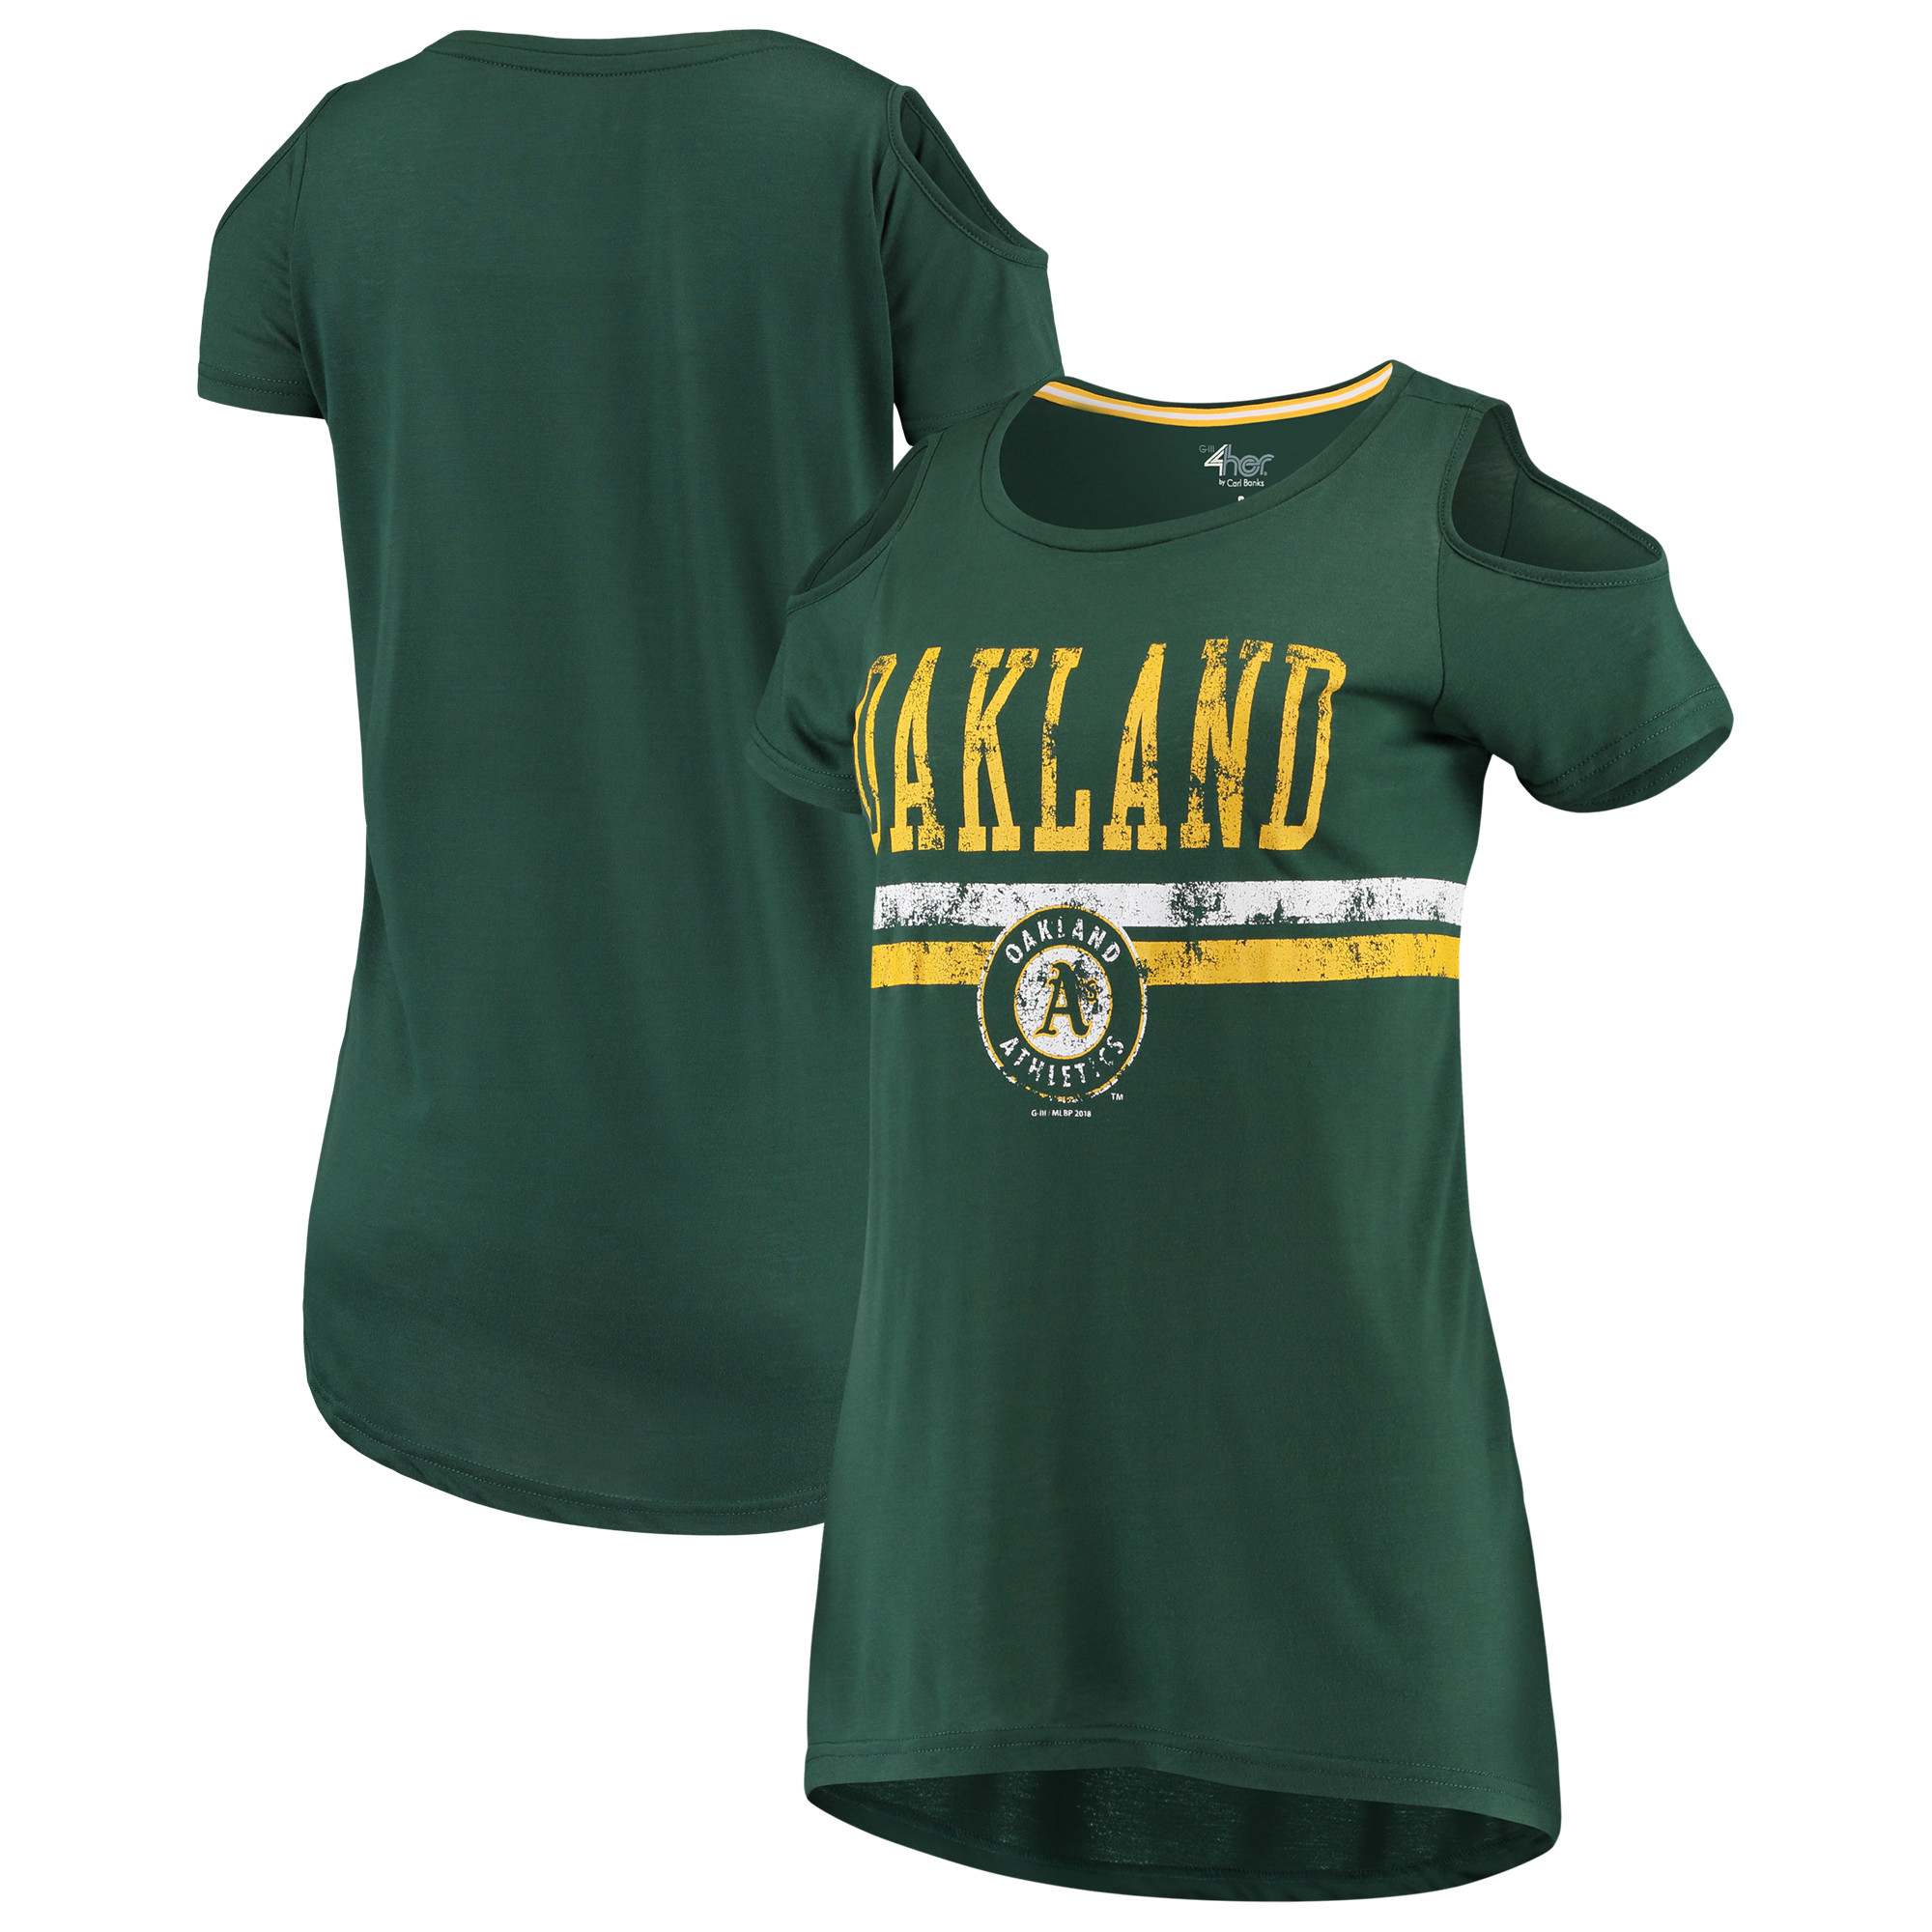 Oakland Athletics G-III 4Her by Carl Banks Women's Clear the Bases Scoop Neck T-Shirt - Green